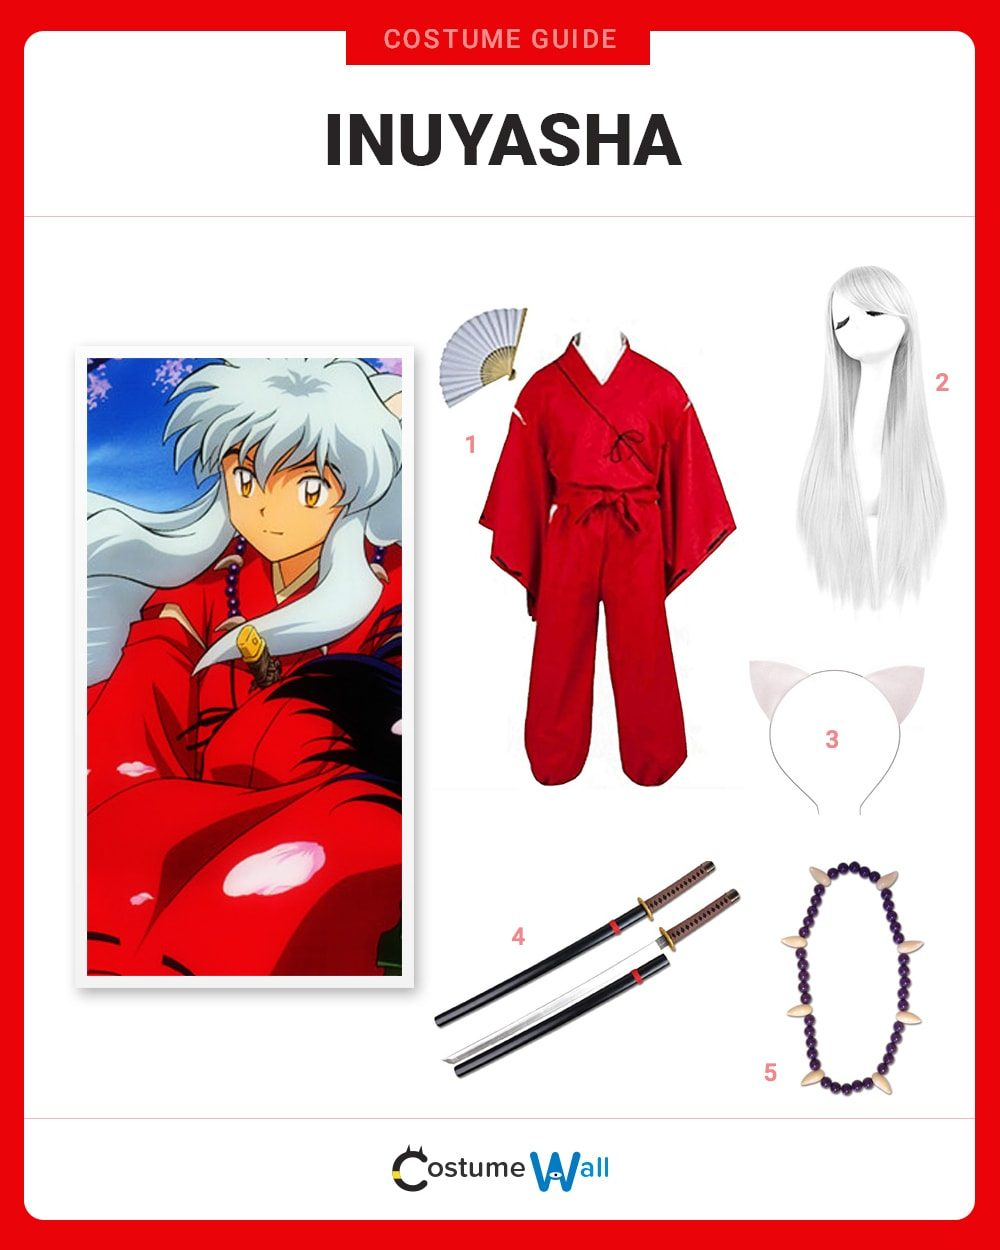 Inuyasha Costume Guide